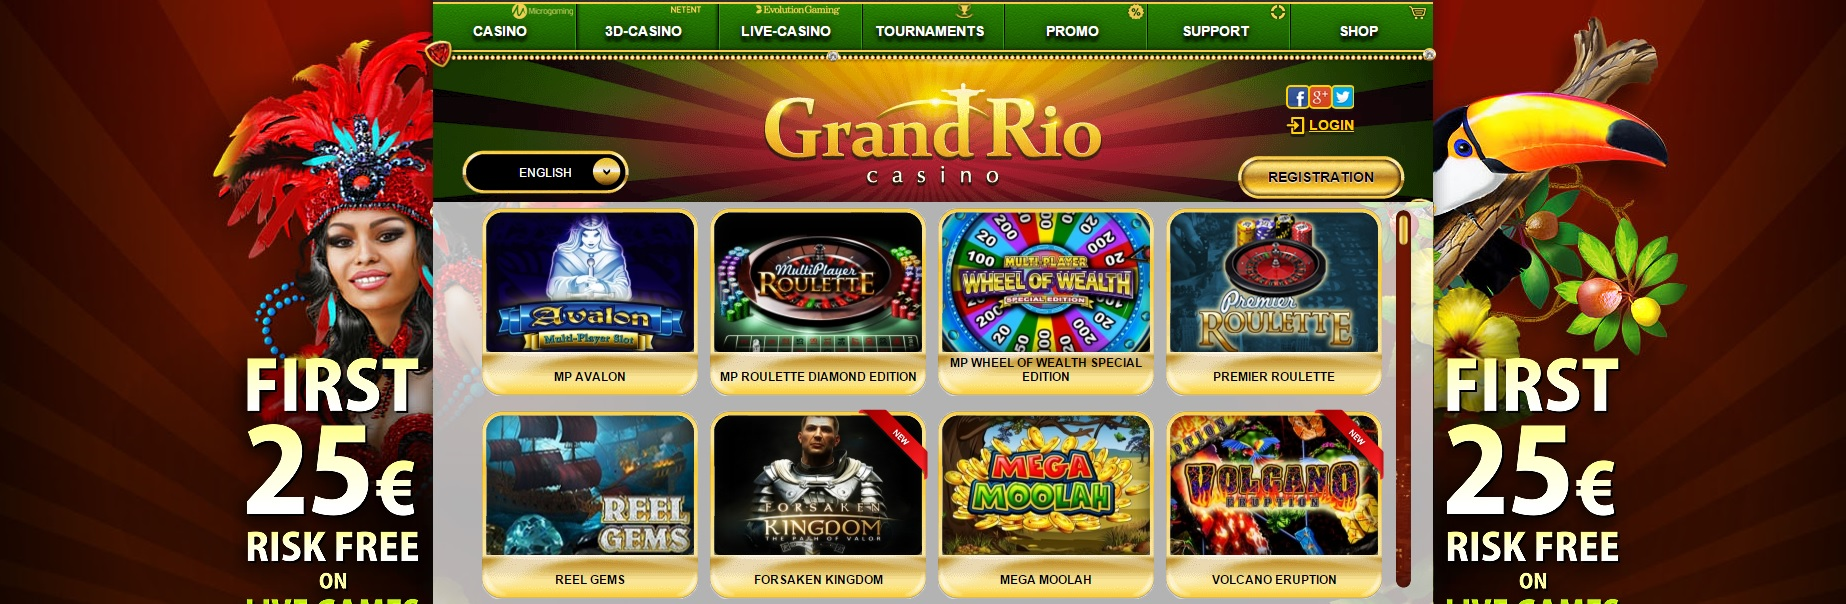 sign up and get free money casino